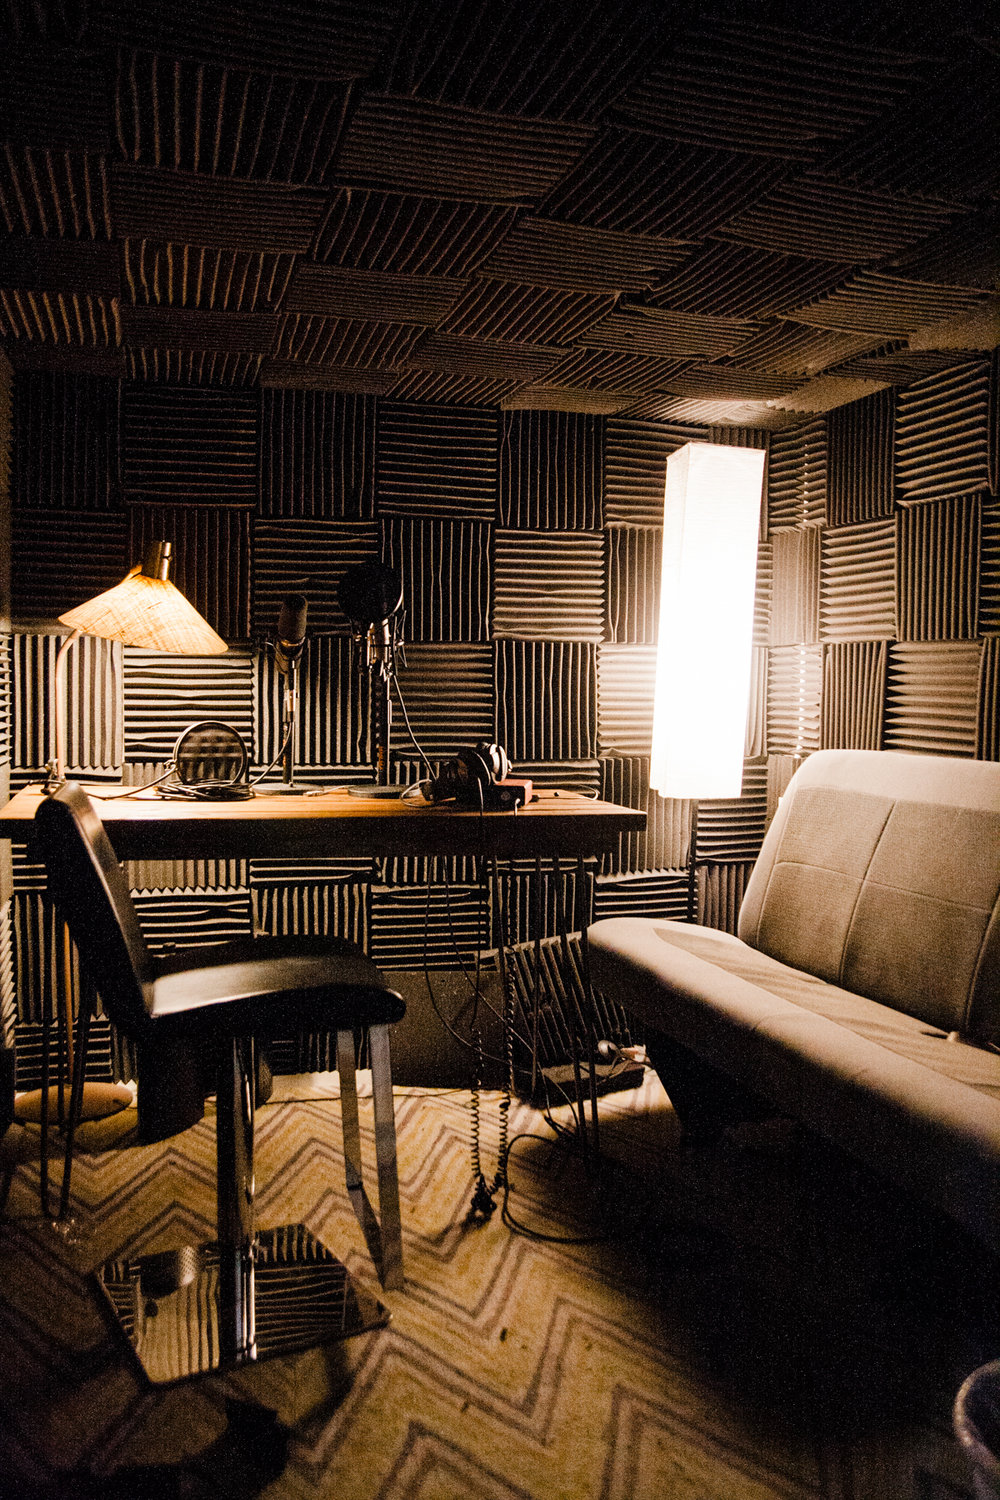 Sound booth! Table and lamp from Retro Den!